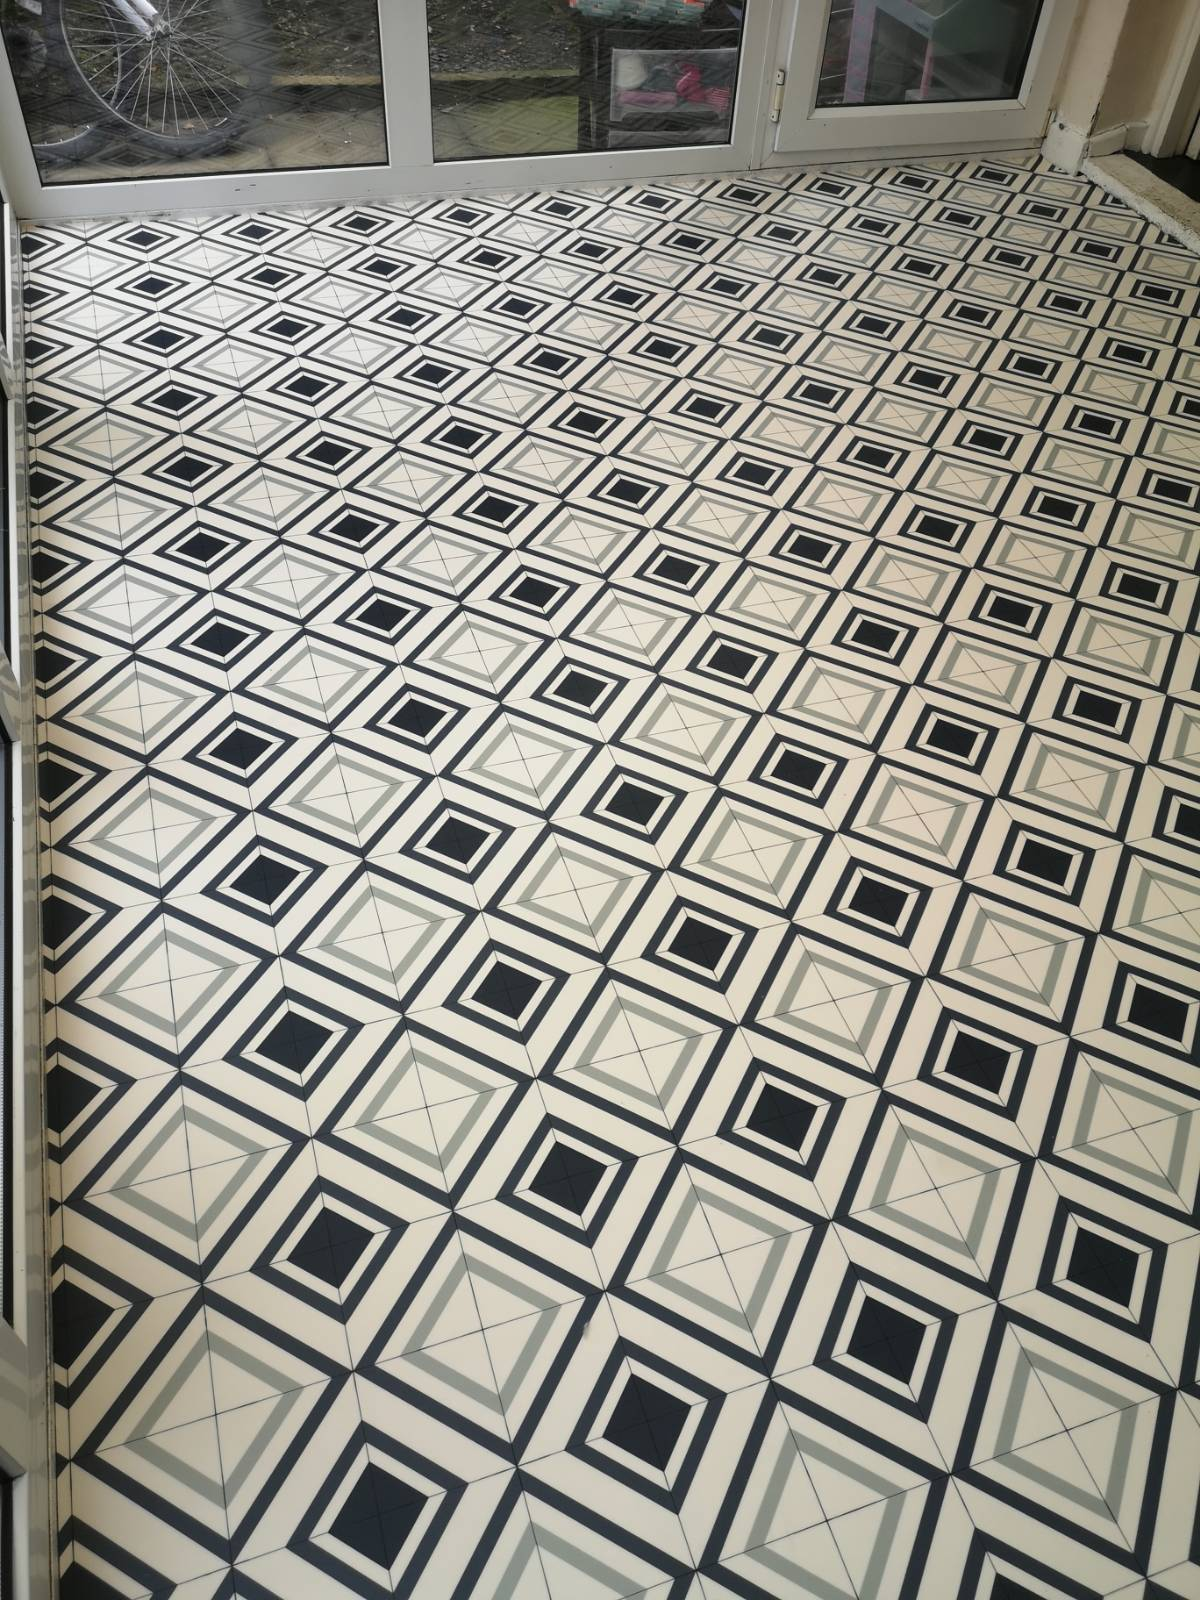 vinyl flooring with tile design in empty kitchen